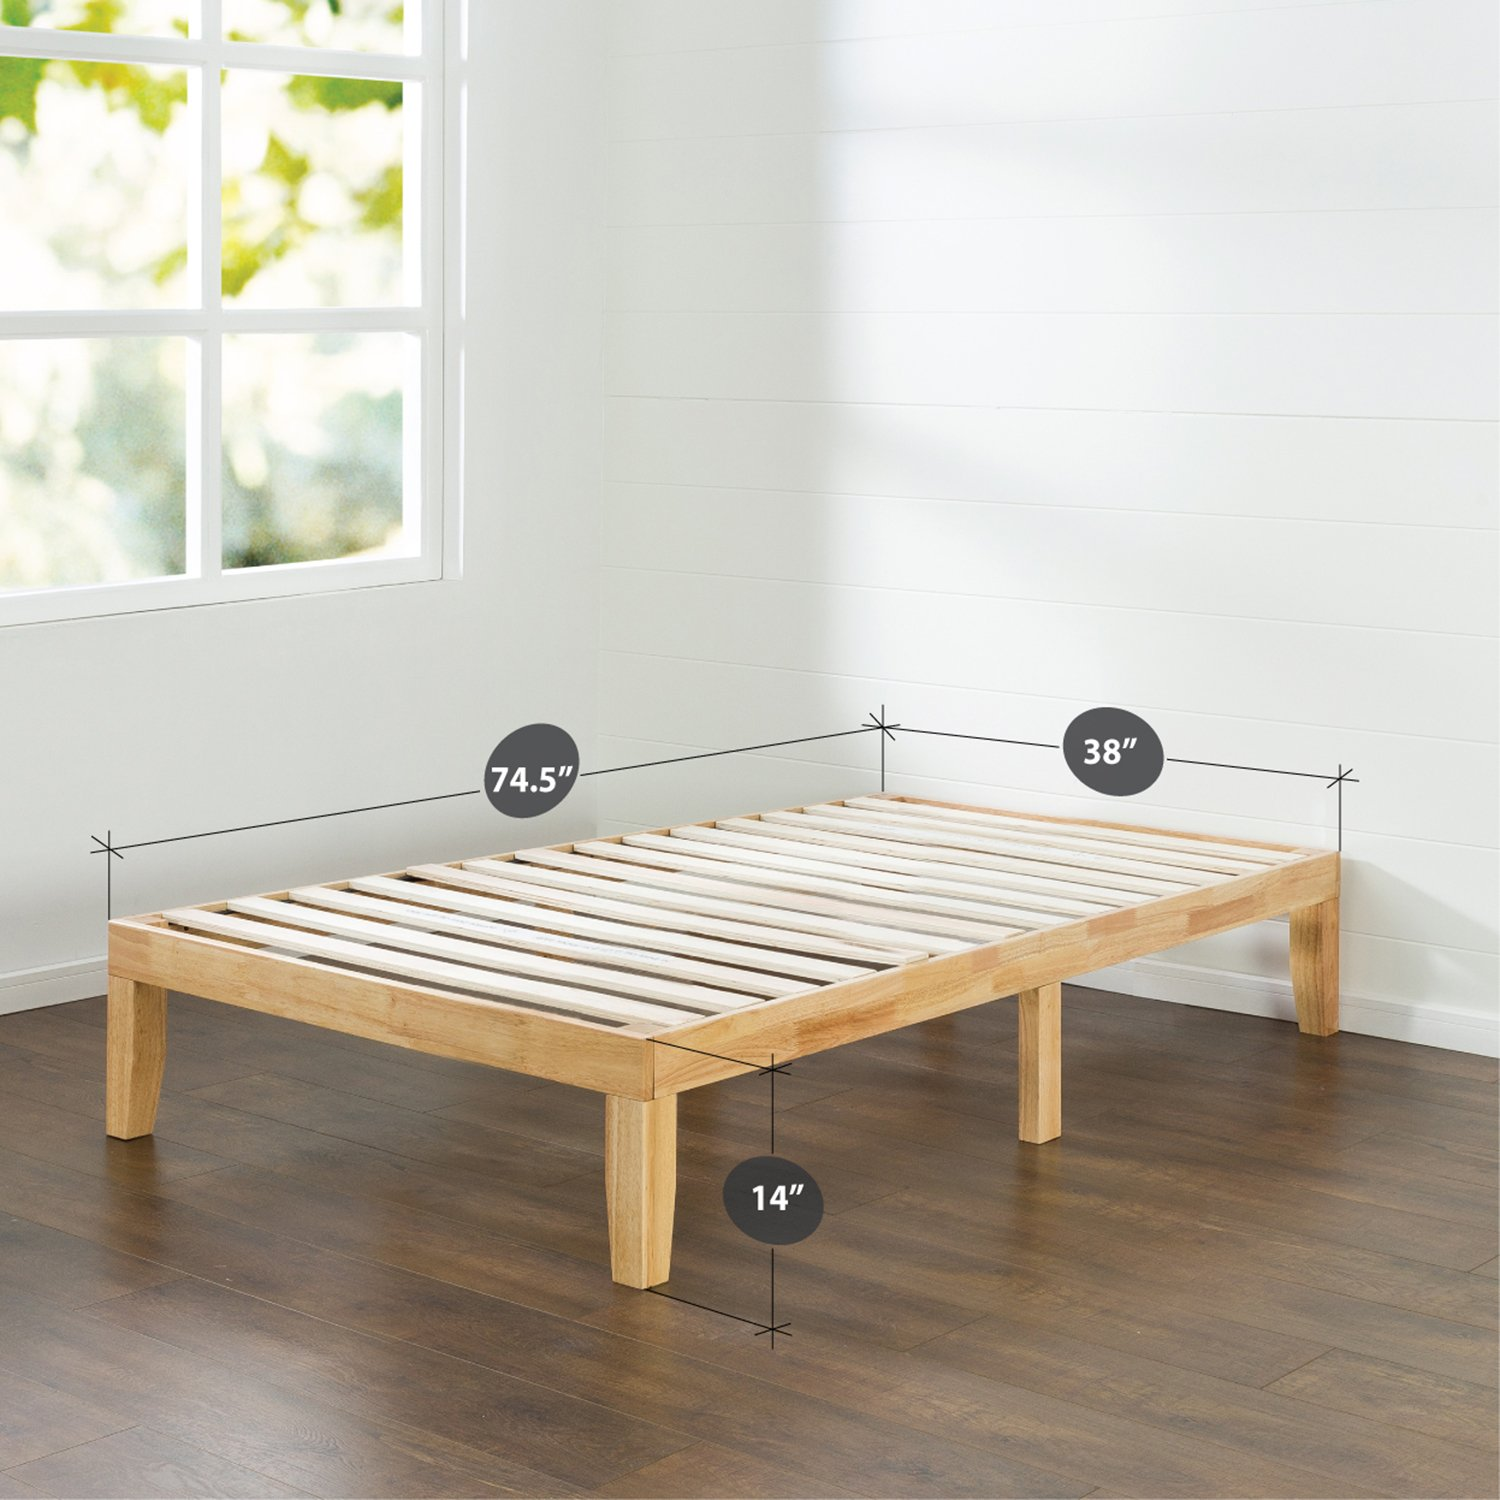 Zinus 14 Inch Wood Platform Bed / No Boxspring Needed / Wood Slat Support / Natural Finish, Twin by Zinus (Image #2)